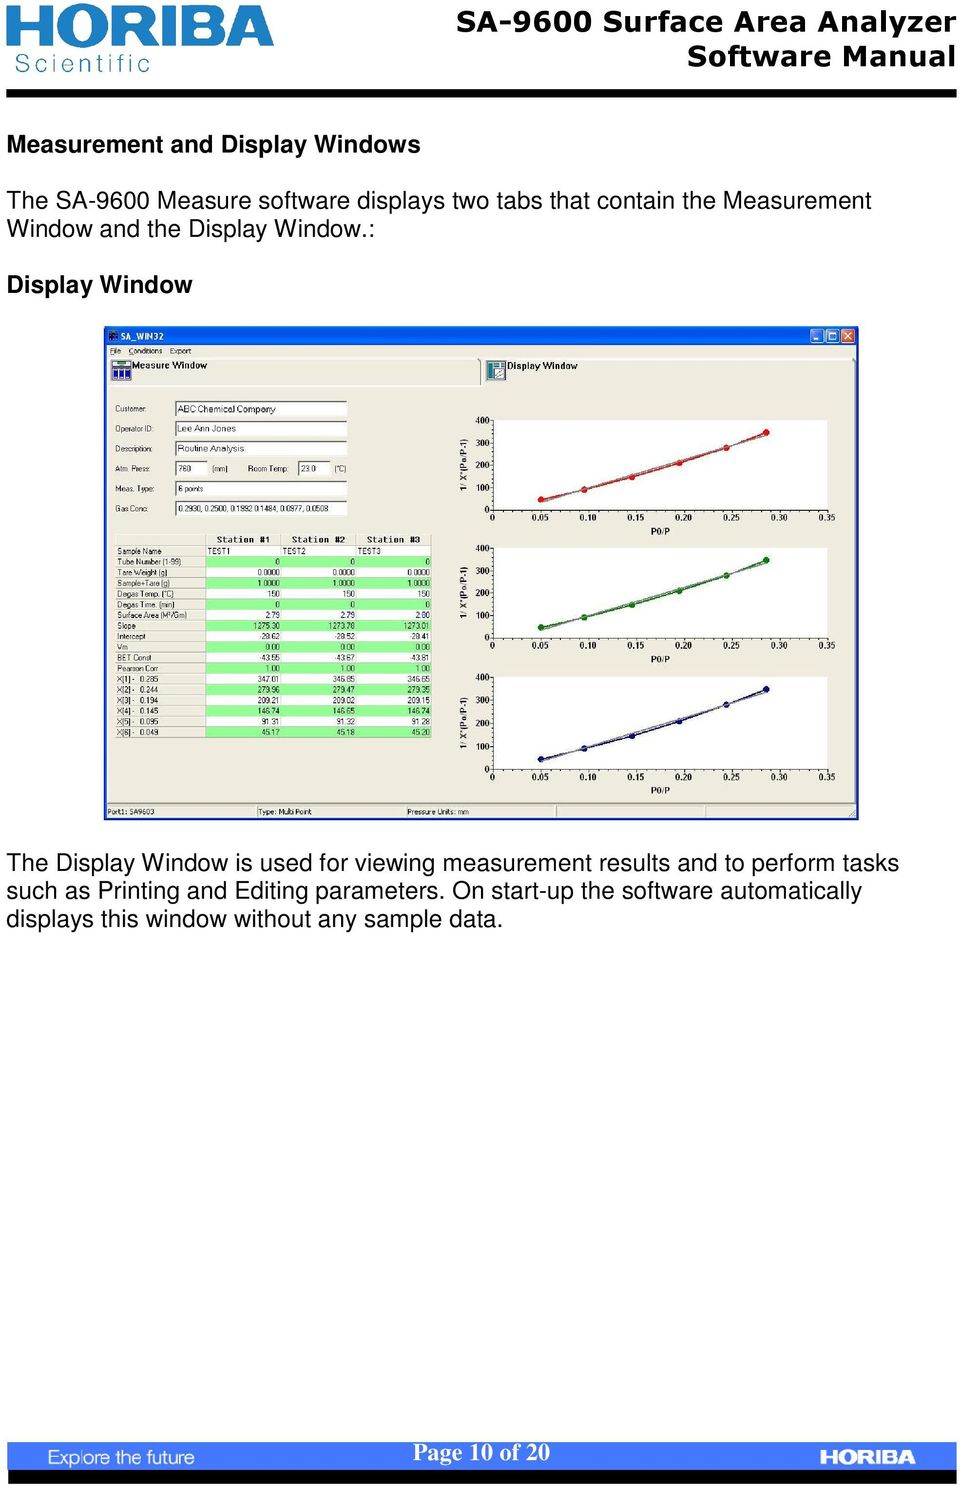 : Display Window The Display Window is used for viewing measurement results and to perform